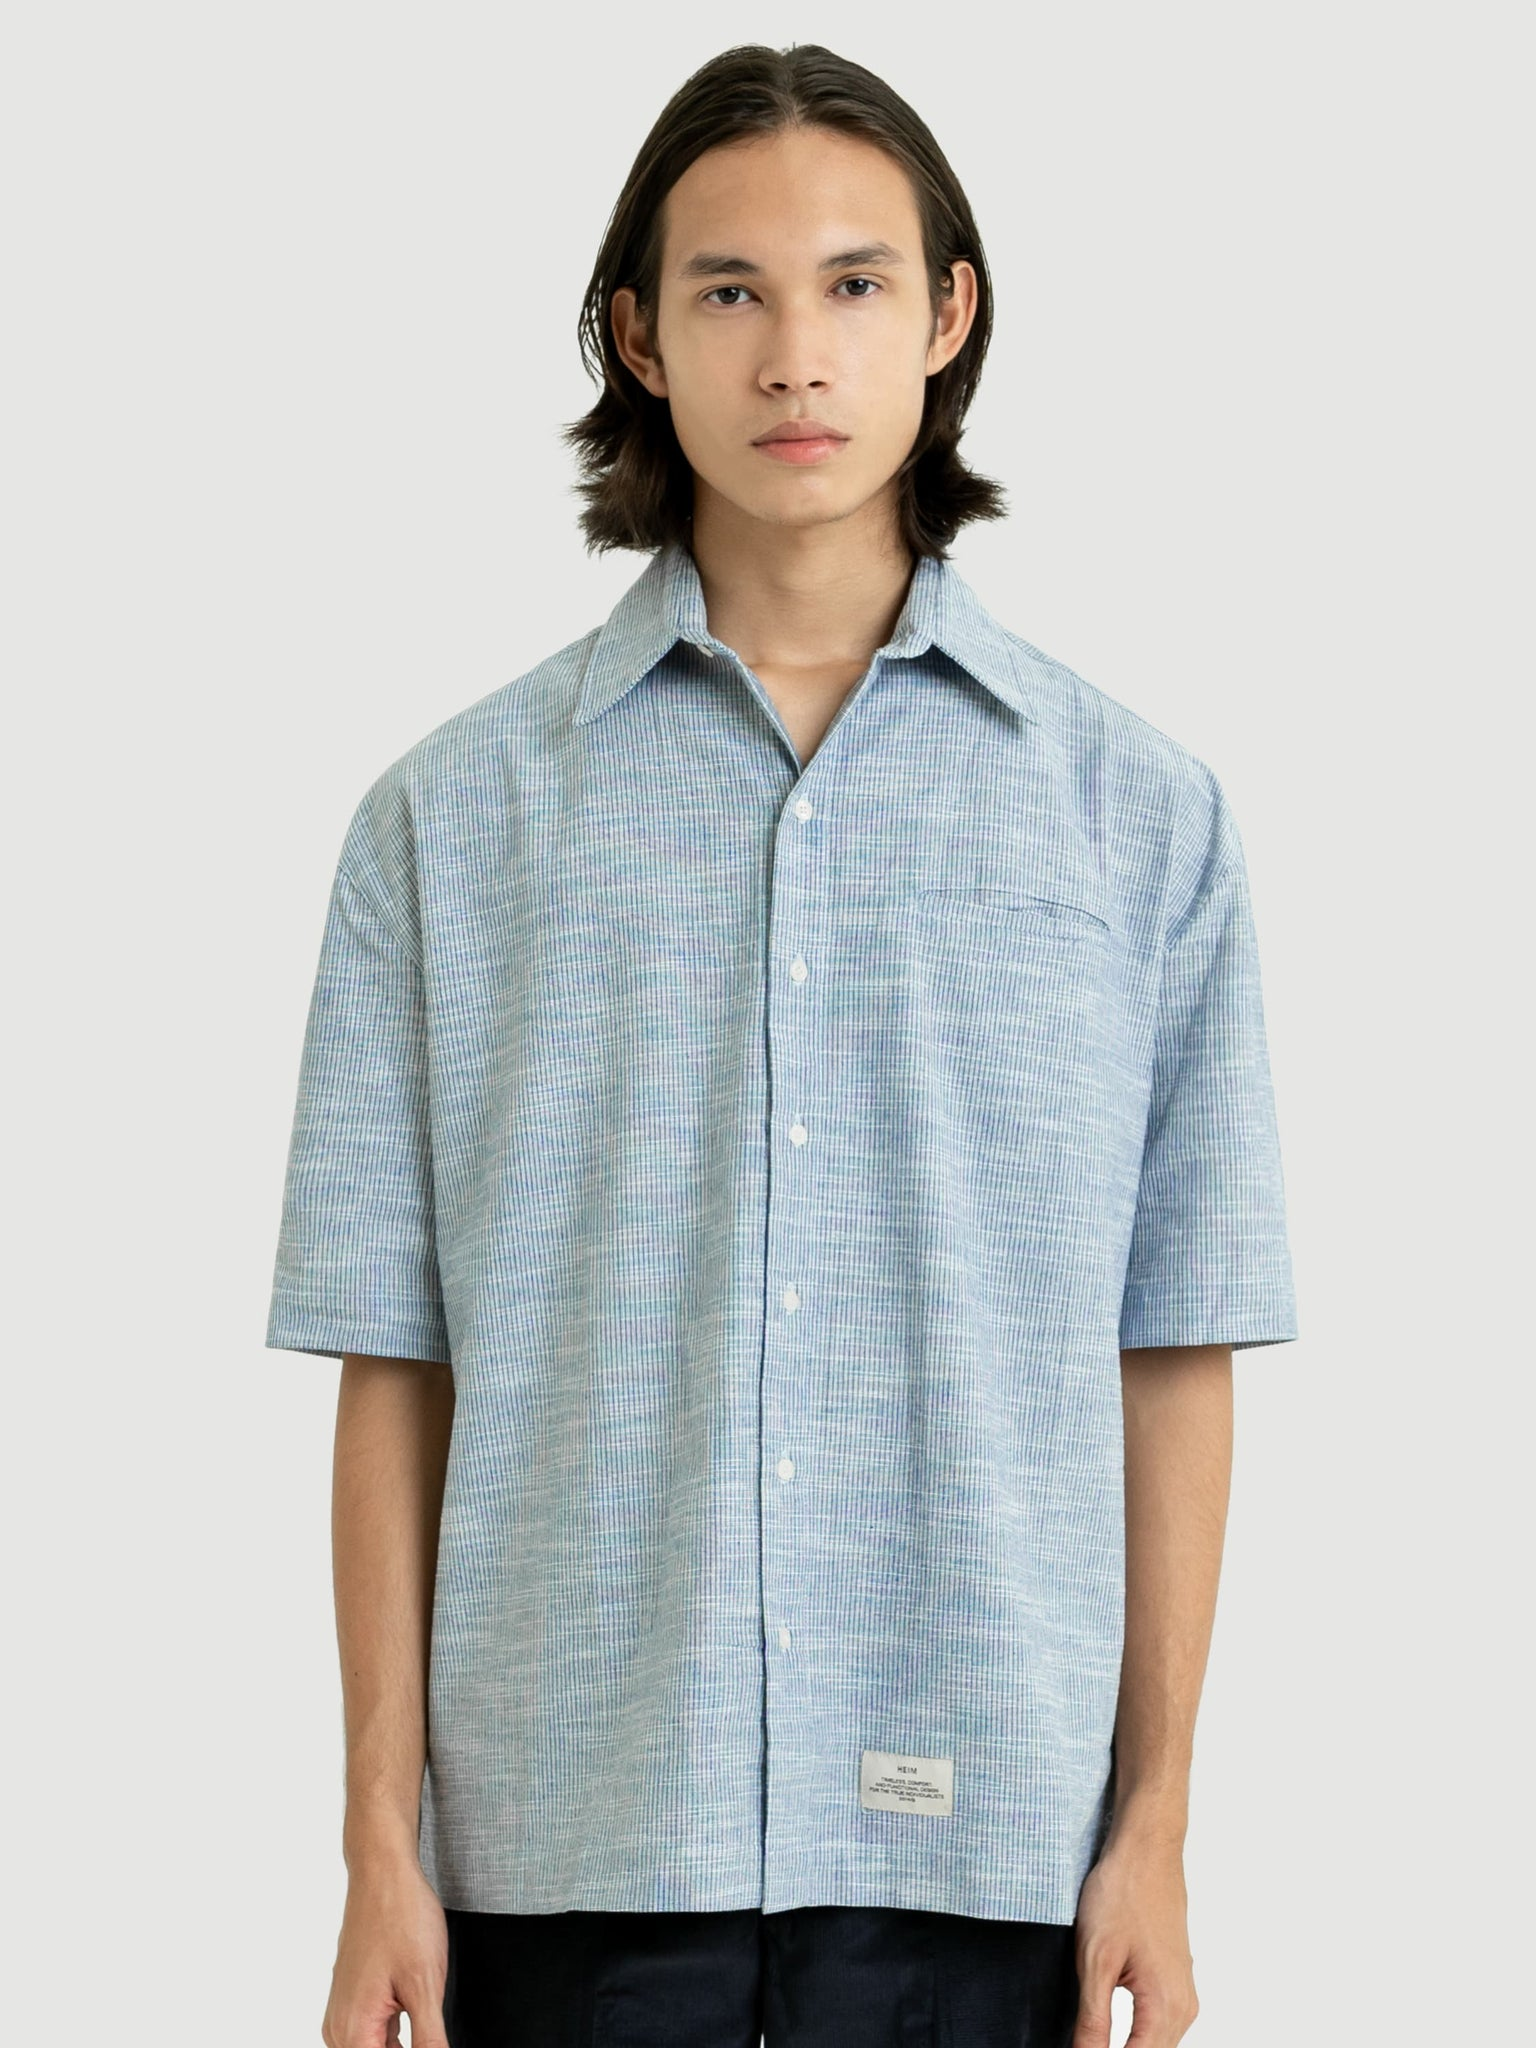 Oversized Textured Blue Shirt